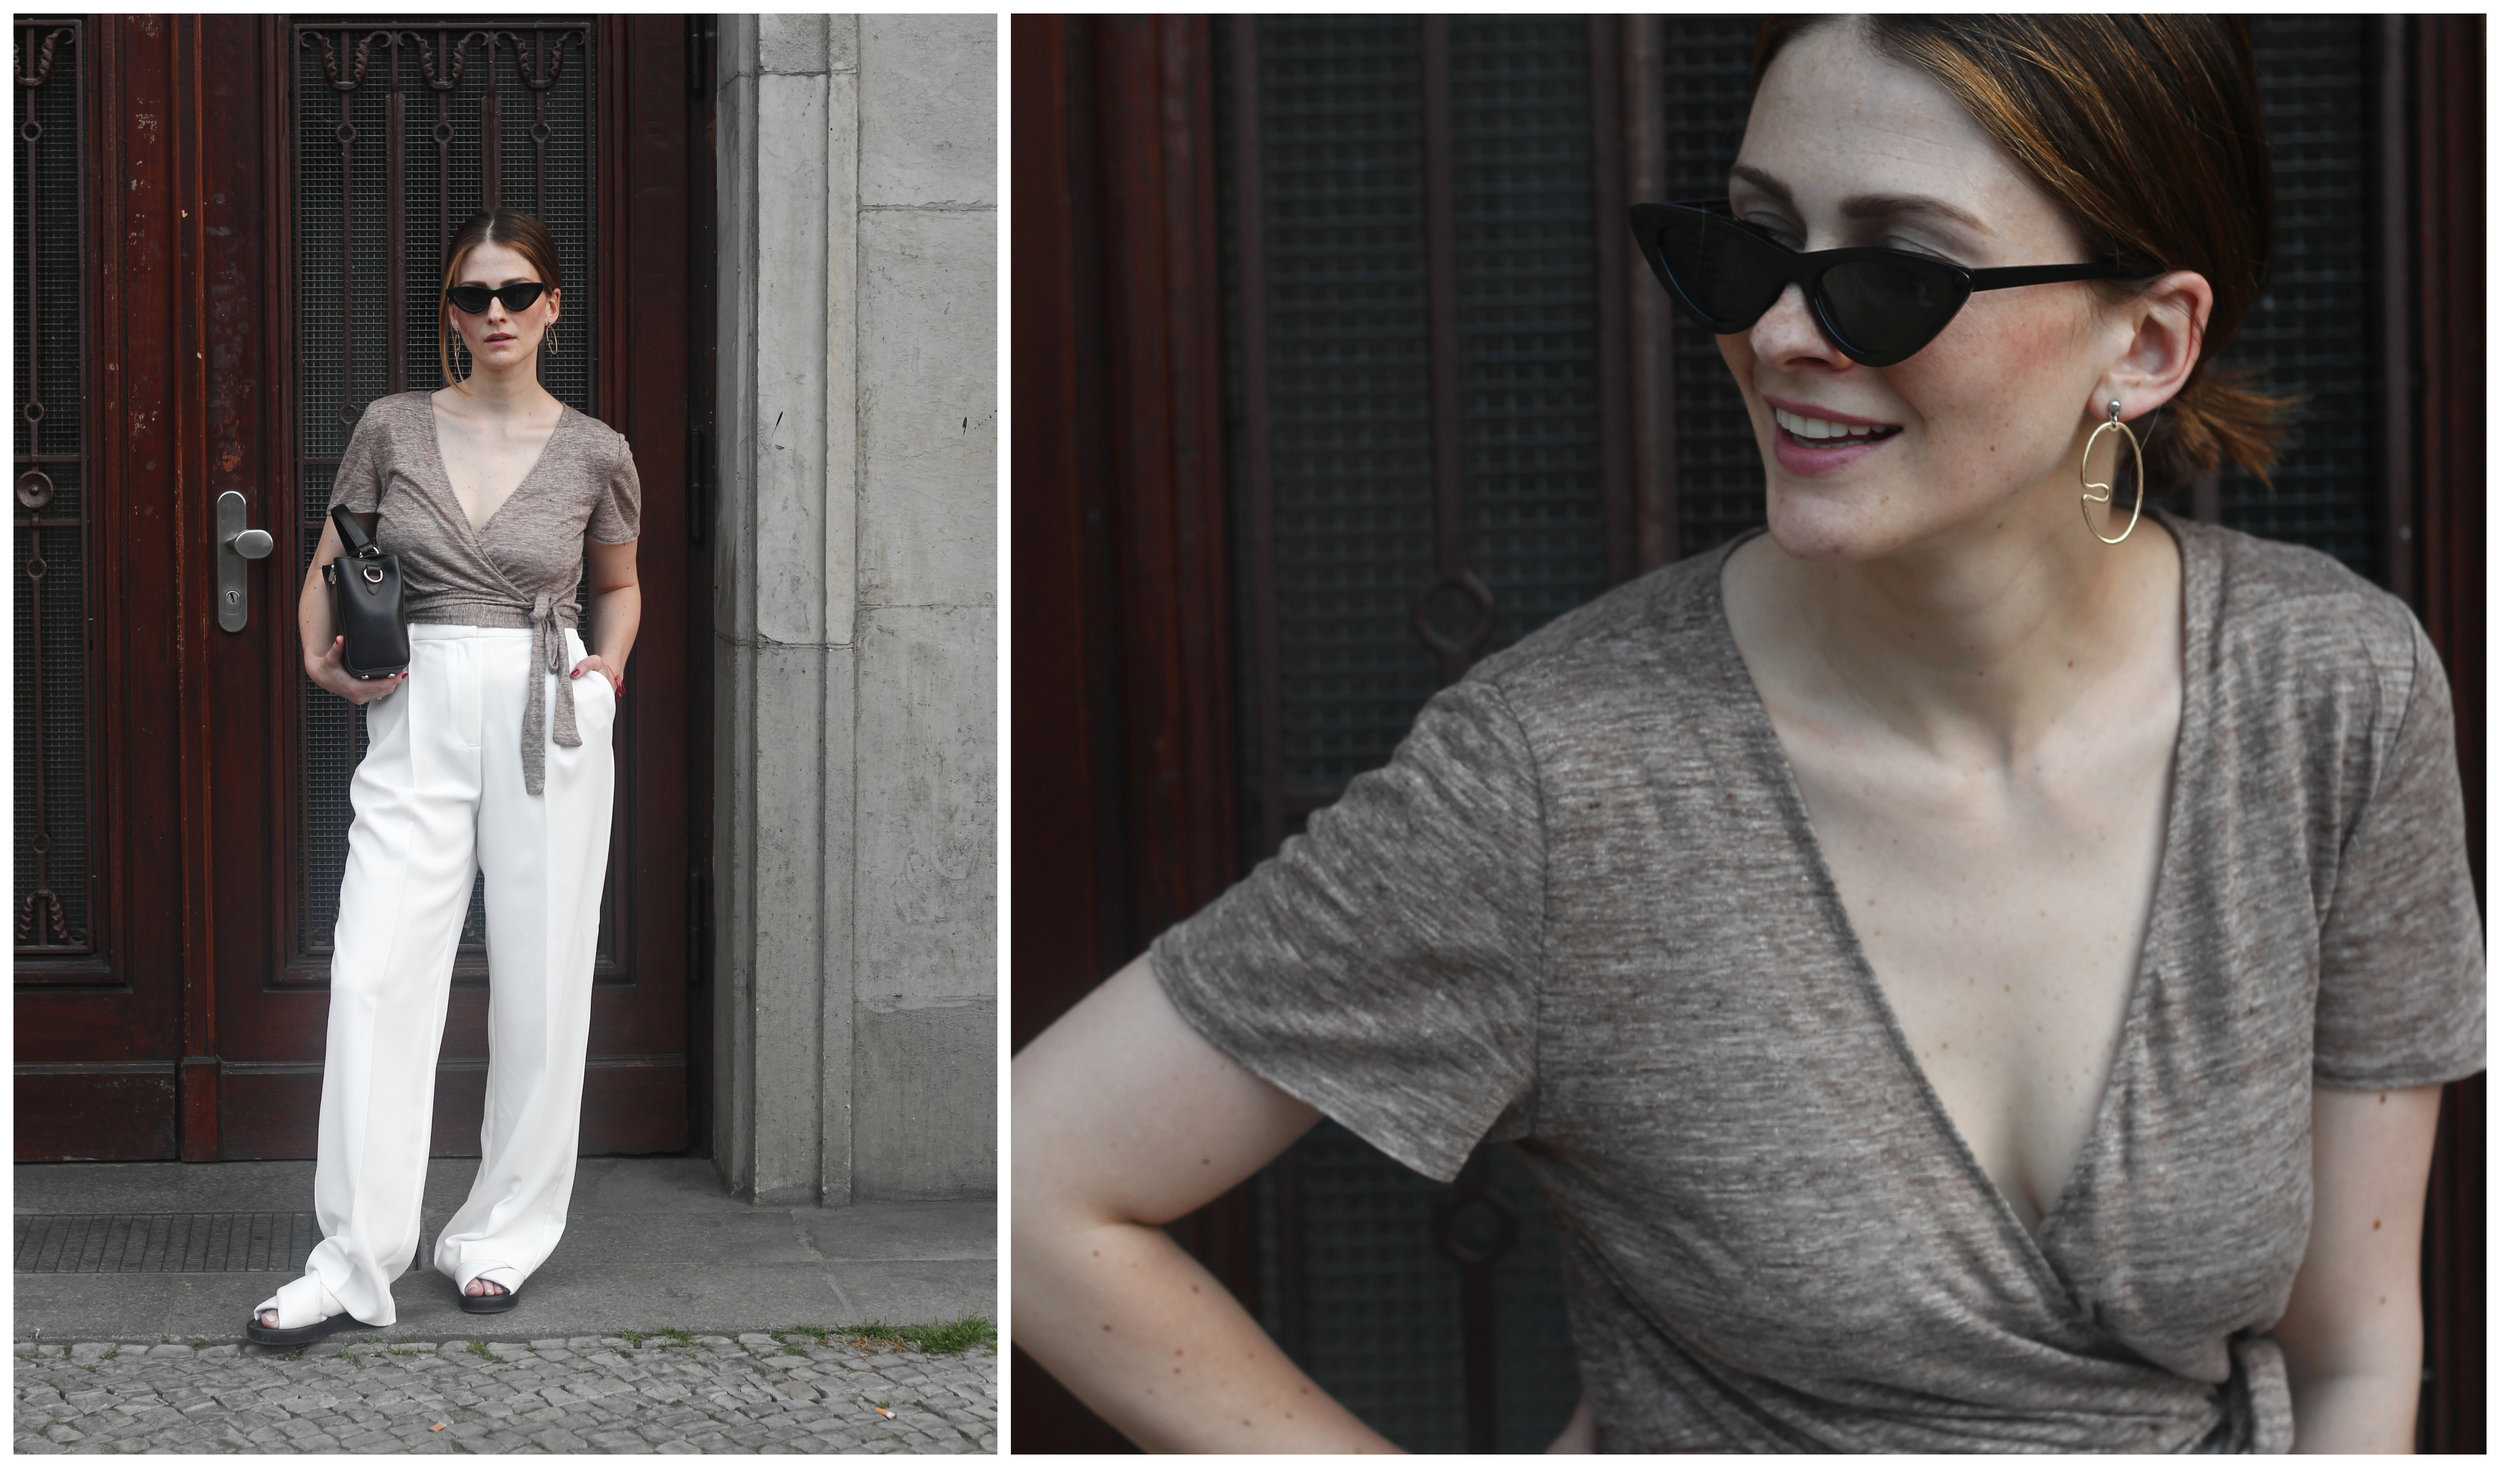 annaporter-white-trousers-croppedtop-summer-look-collage-1